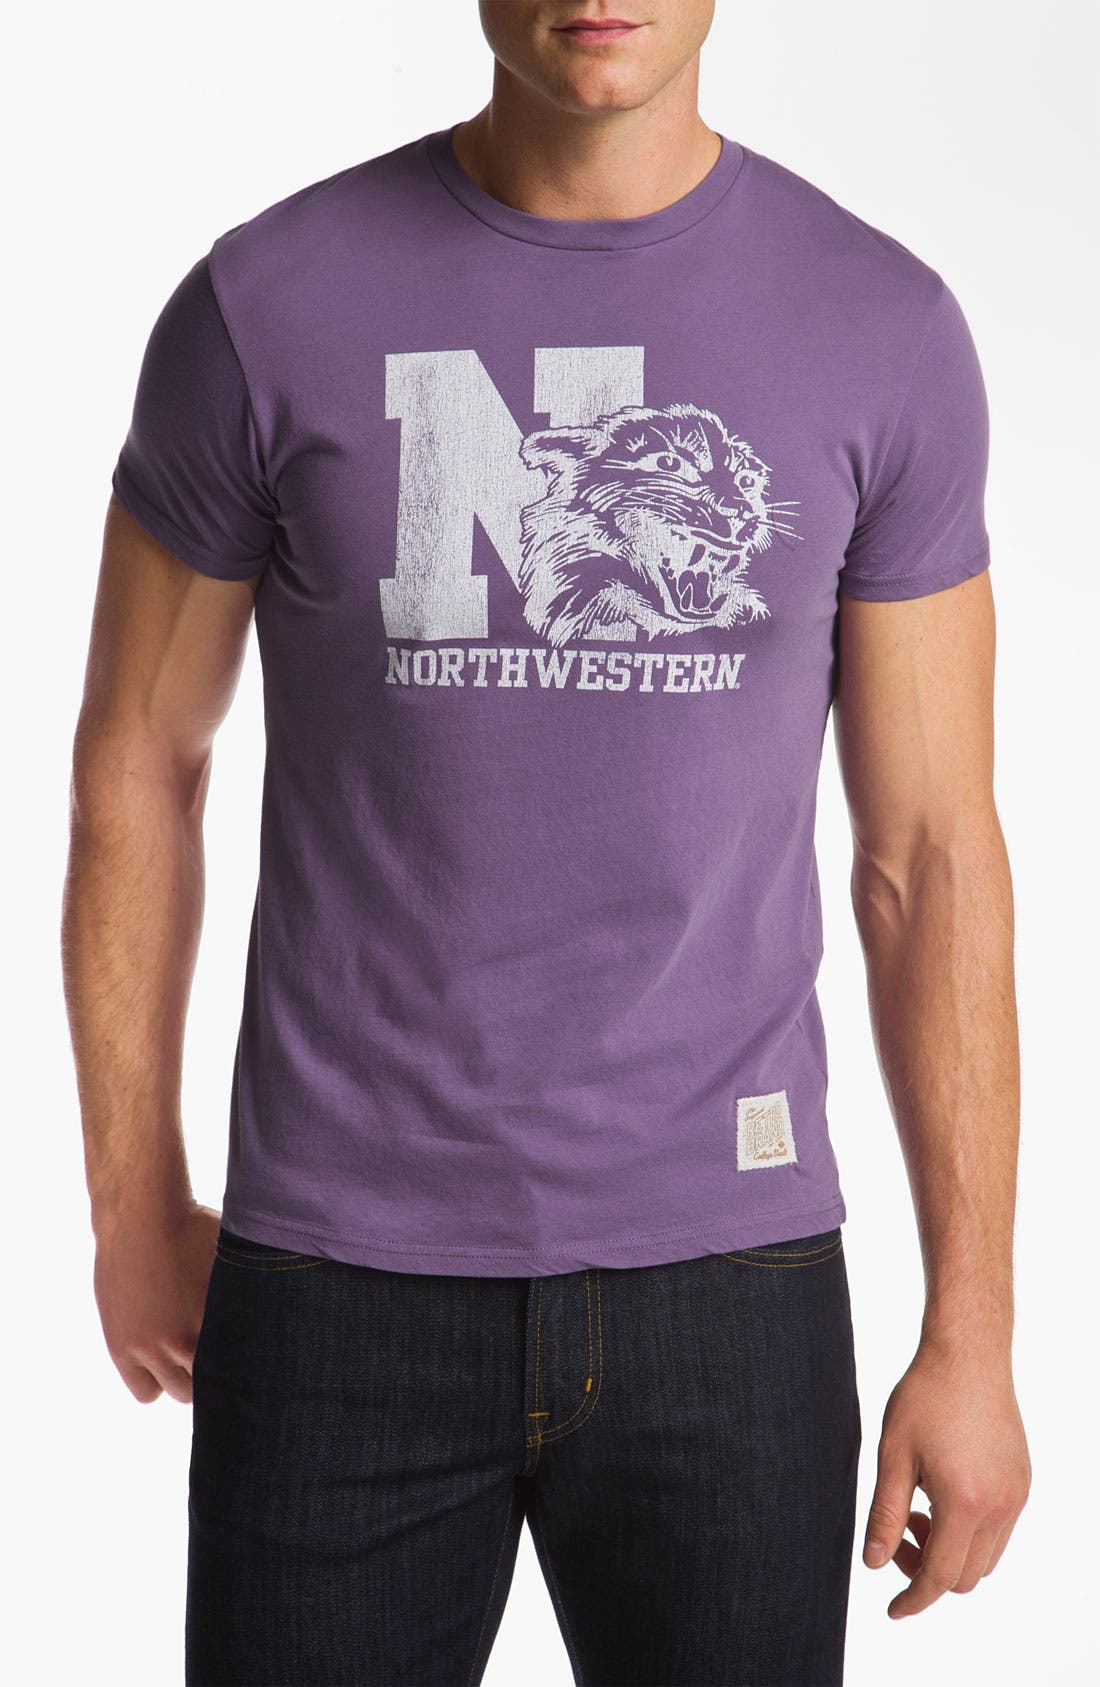 Alternate Image 1 Selected - The Original Retro Brand 'Northwestern Wildcats' T-Shirt